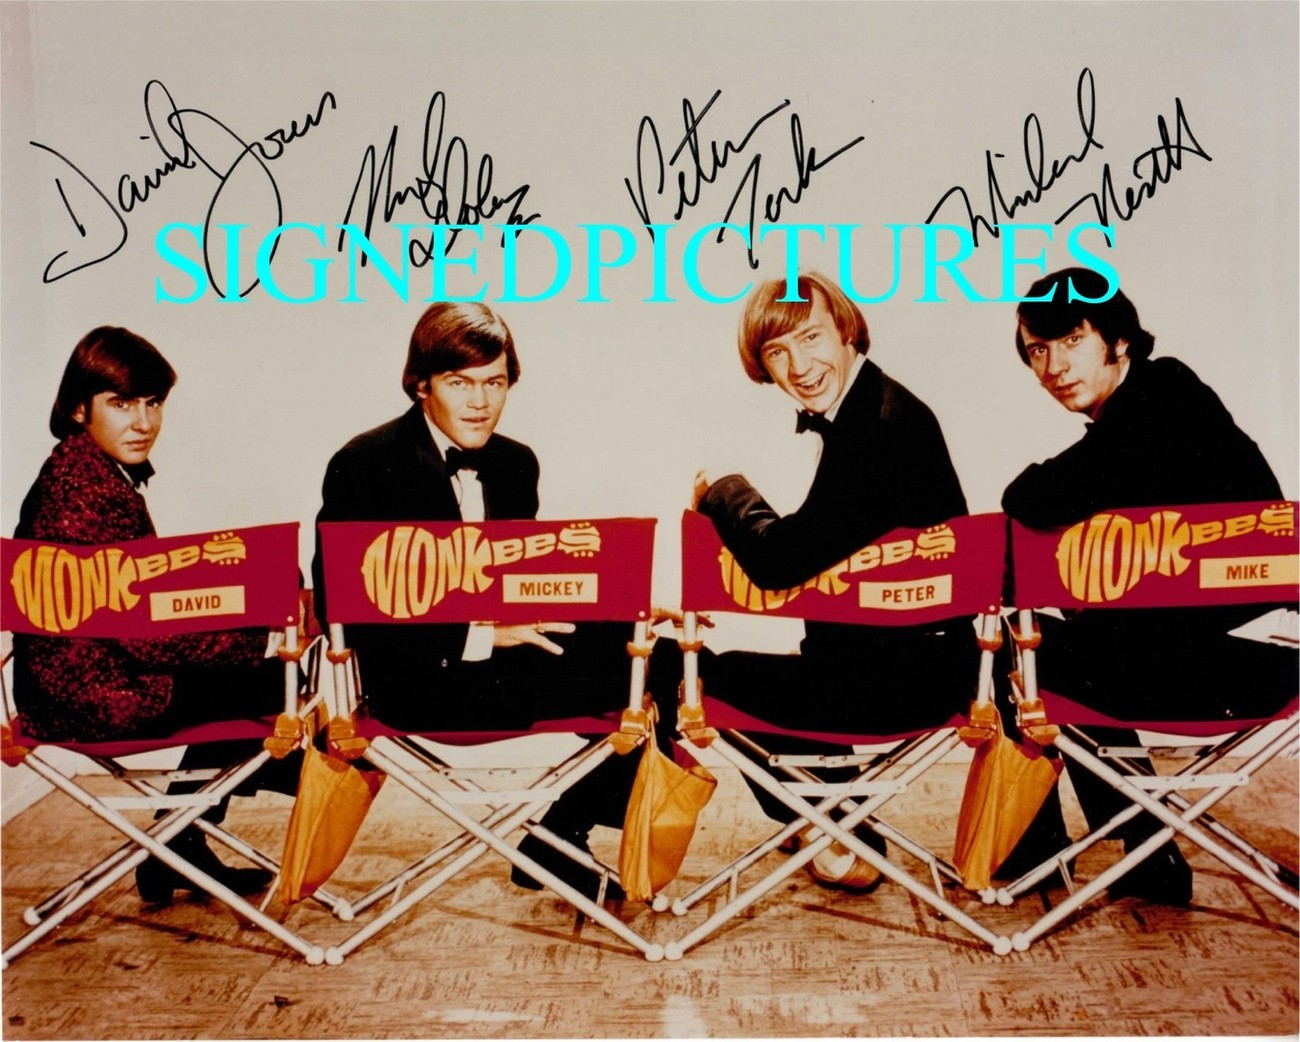 THE MONKEES BAND ALL 4 SIGNED AUTOGRAPHED 8X10 RP PHOTO HEY HEY CLASSIC COMEDY